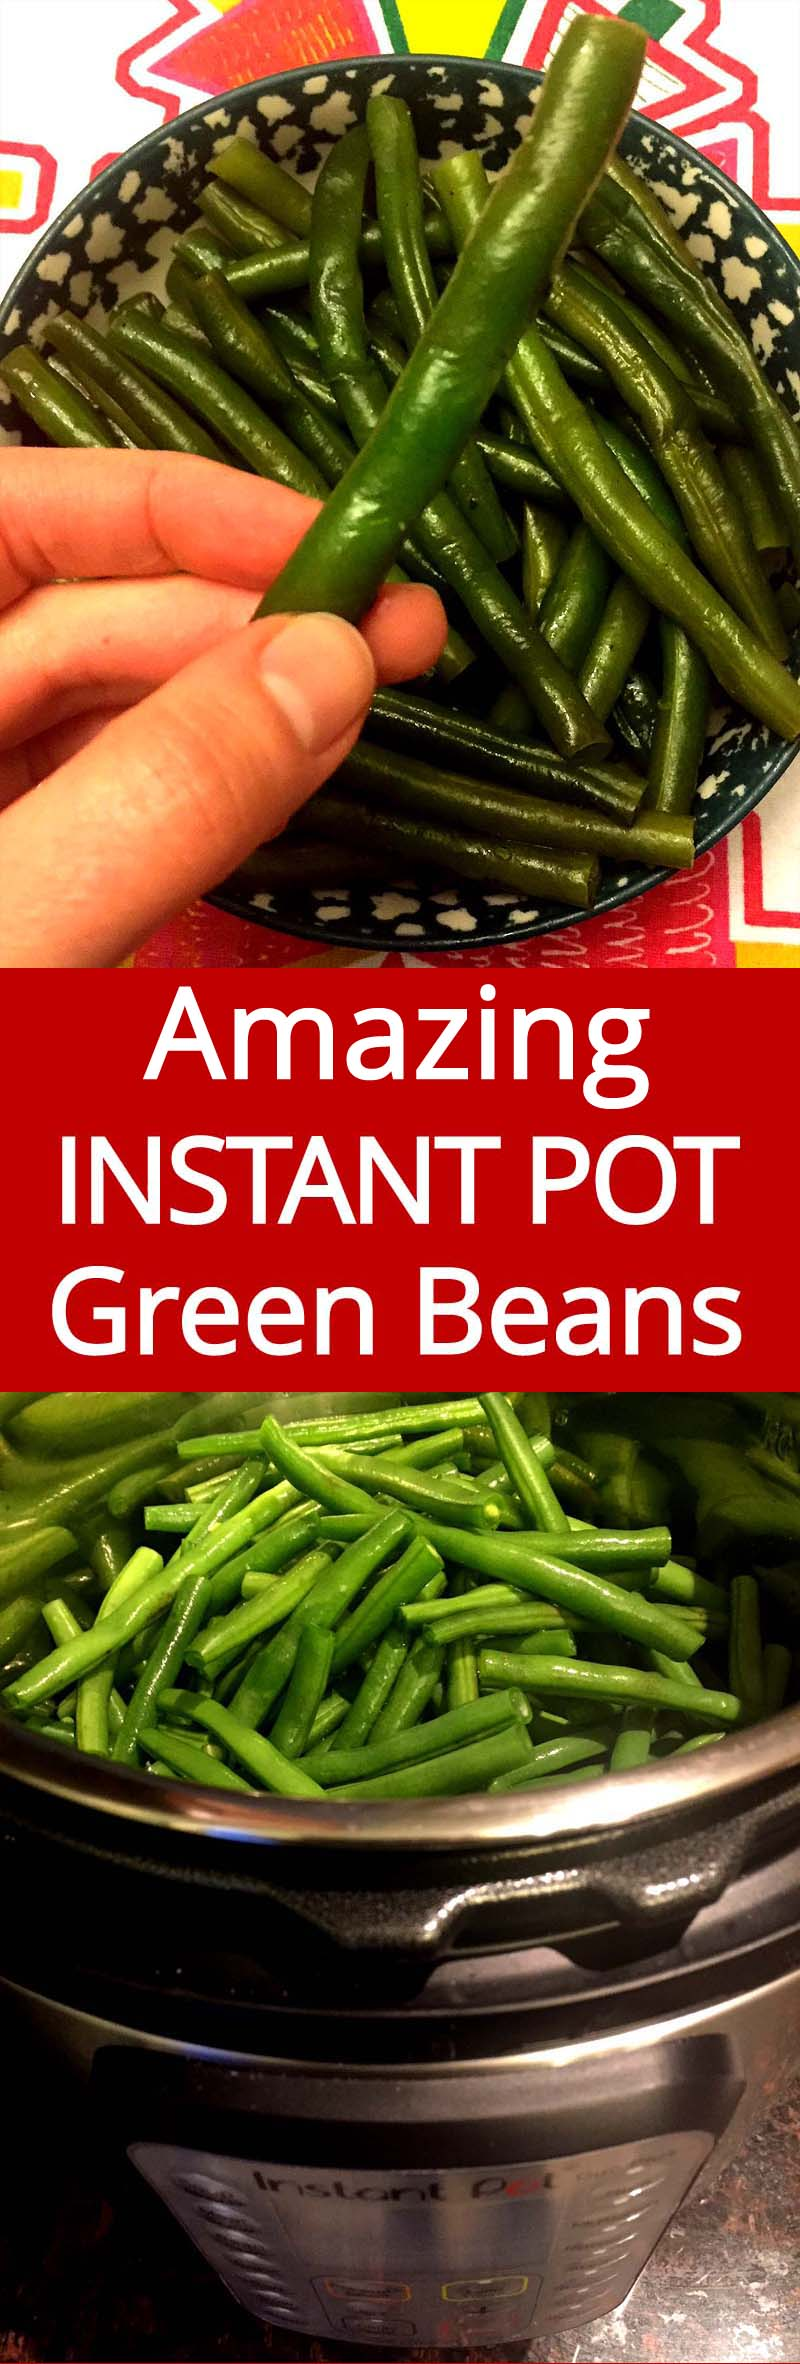 I love cooking green beans in my Instant Pot! Instant Pot steamed green beans are amazing! Perfectly crunchy and yummy!